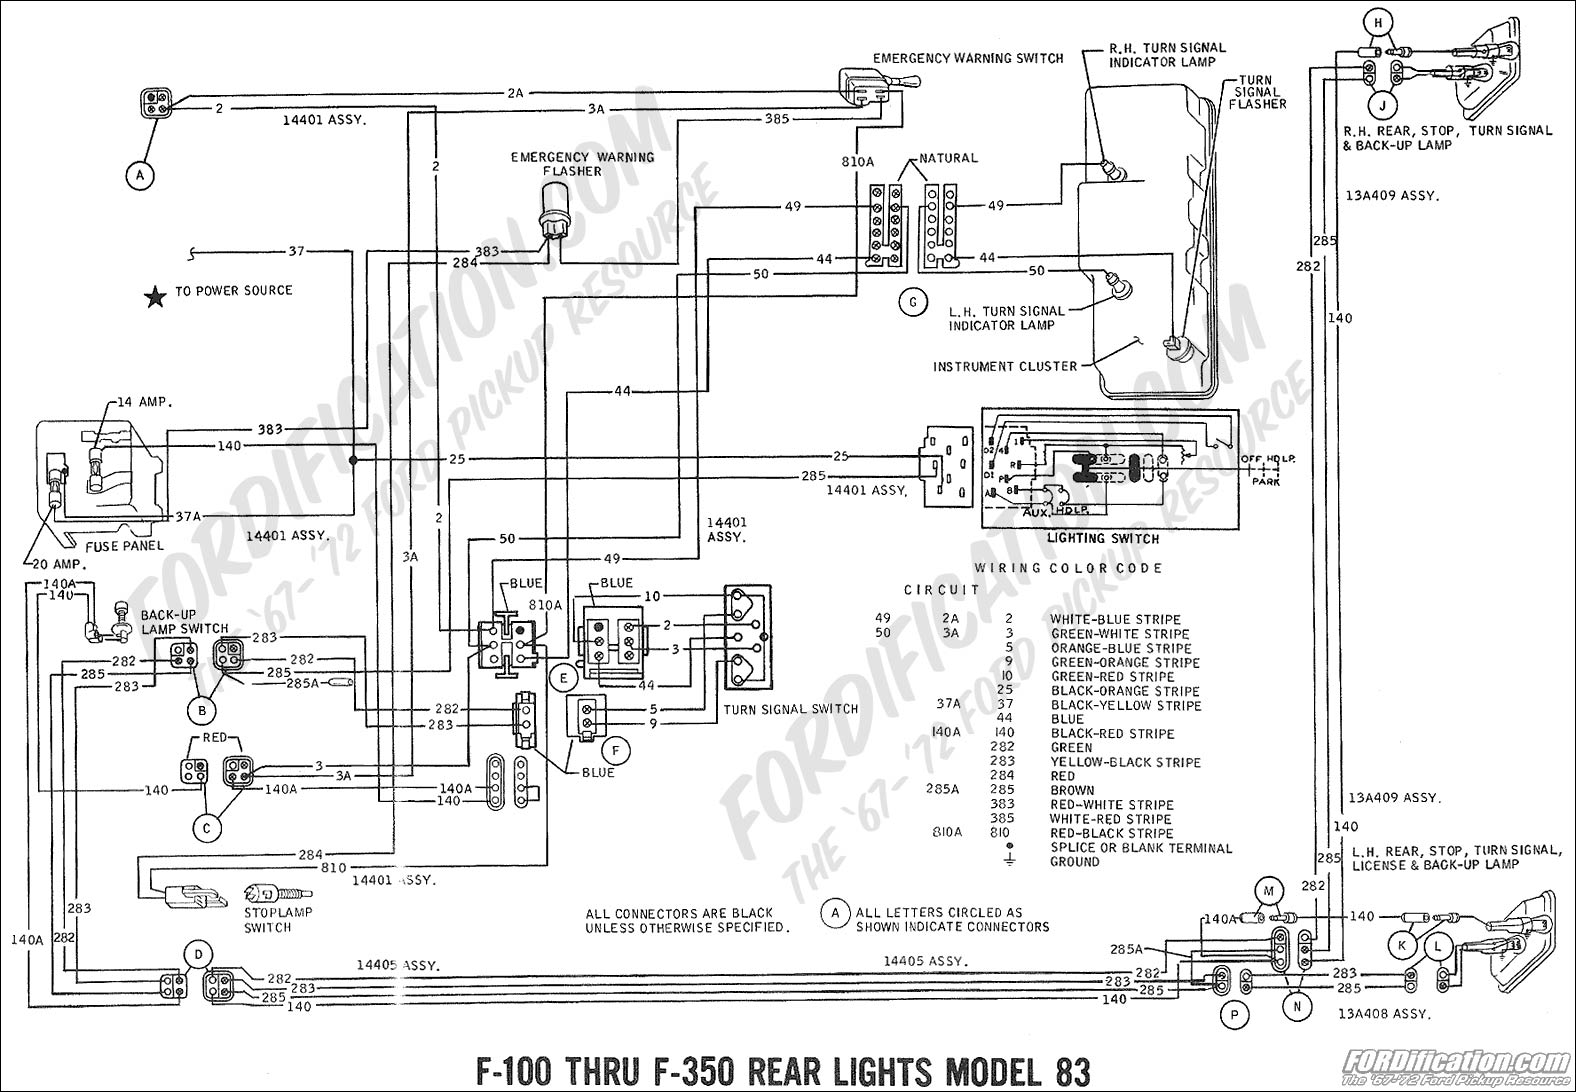 wiring_69rearlights mdl83 2 1977 ford f100 alternator wiring diagram wiring diagram and 1969 Ford F100 Steering Column Wiring Diagram at gsmportal.co